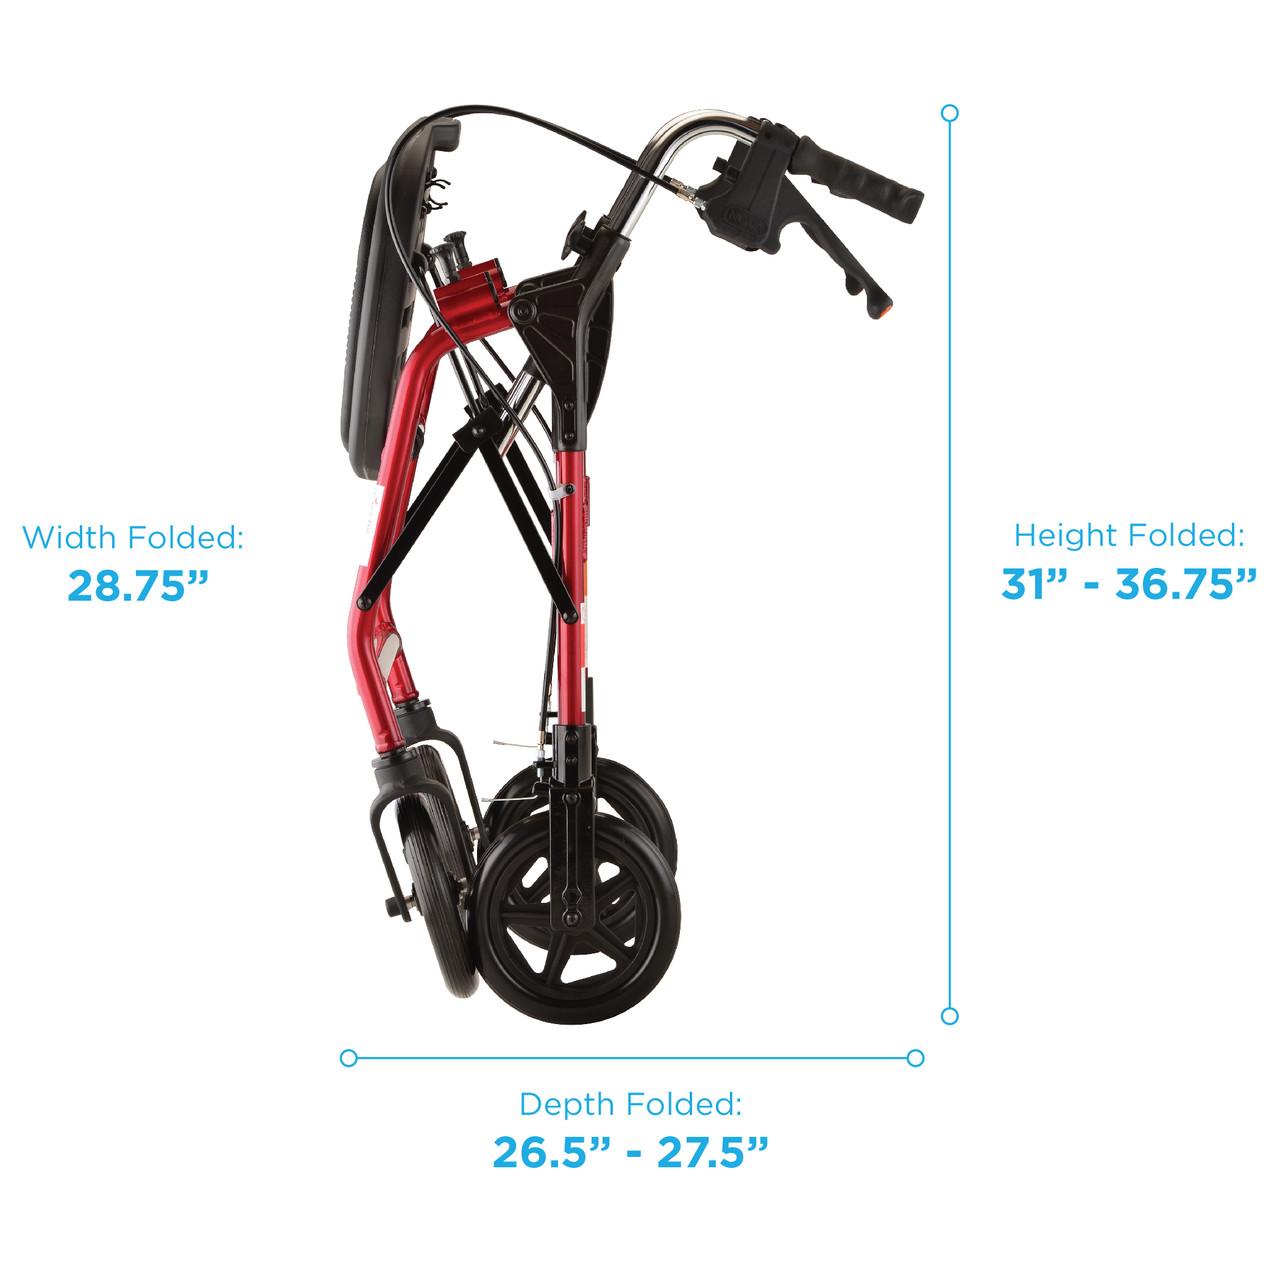 Mighty Mack Heavy Duty Rollator folded measurements